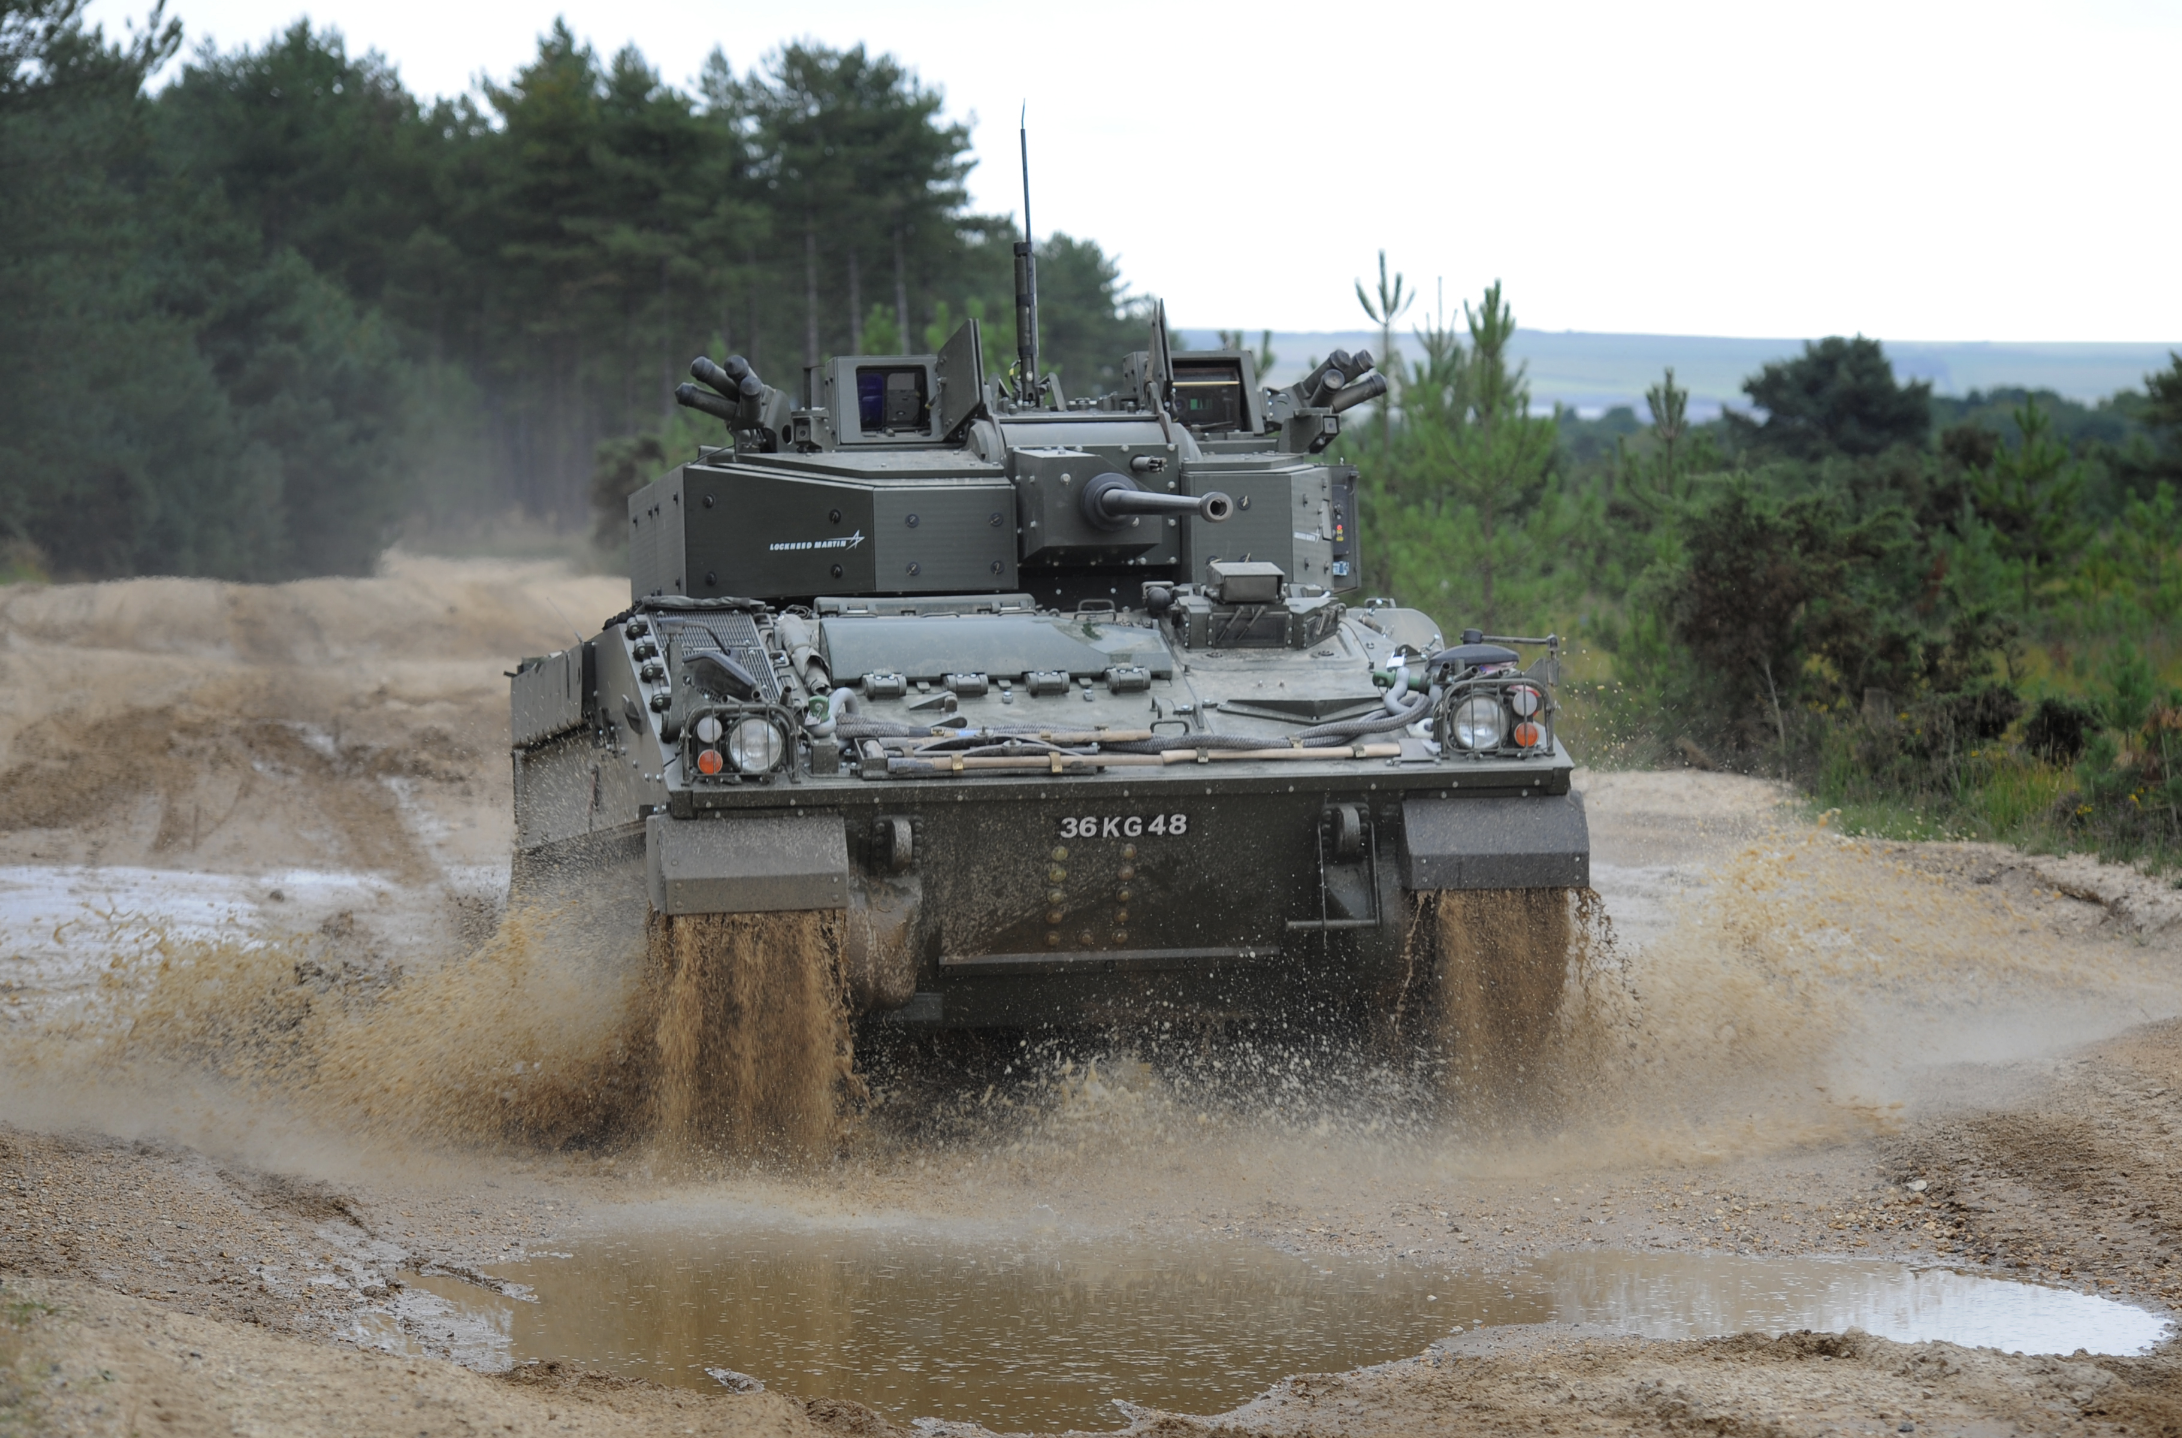 What's a Warrior armoured vehicle and what does it do?